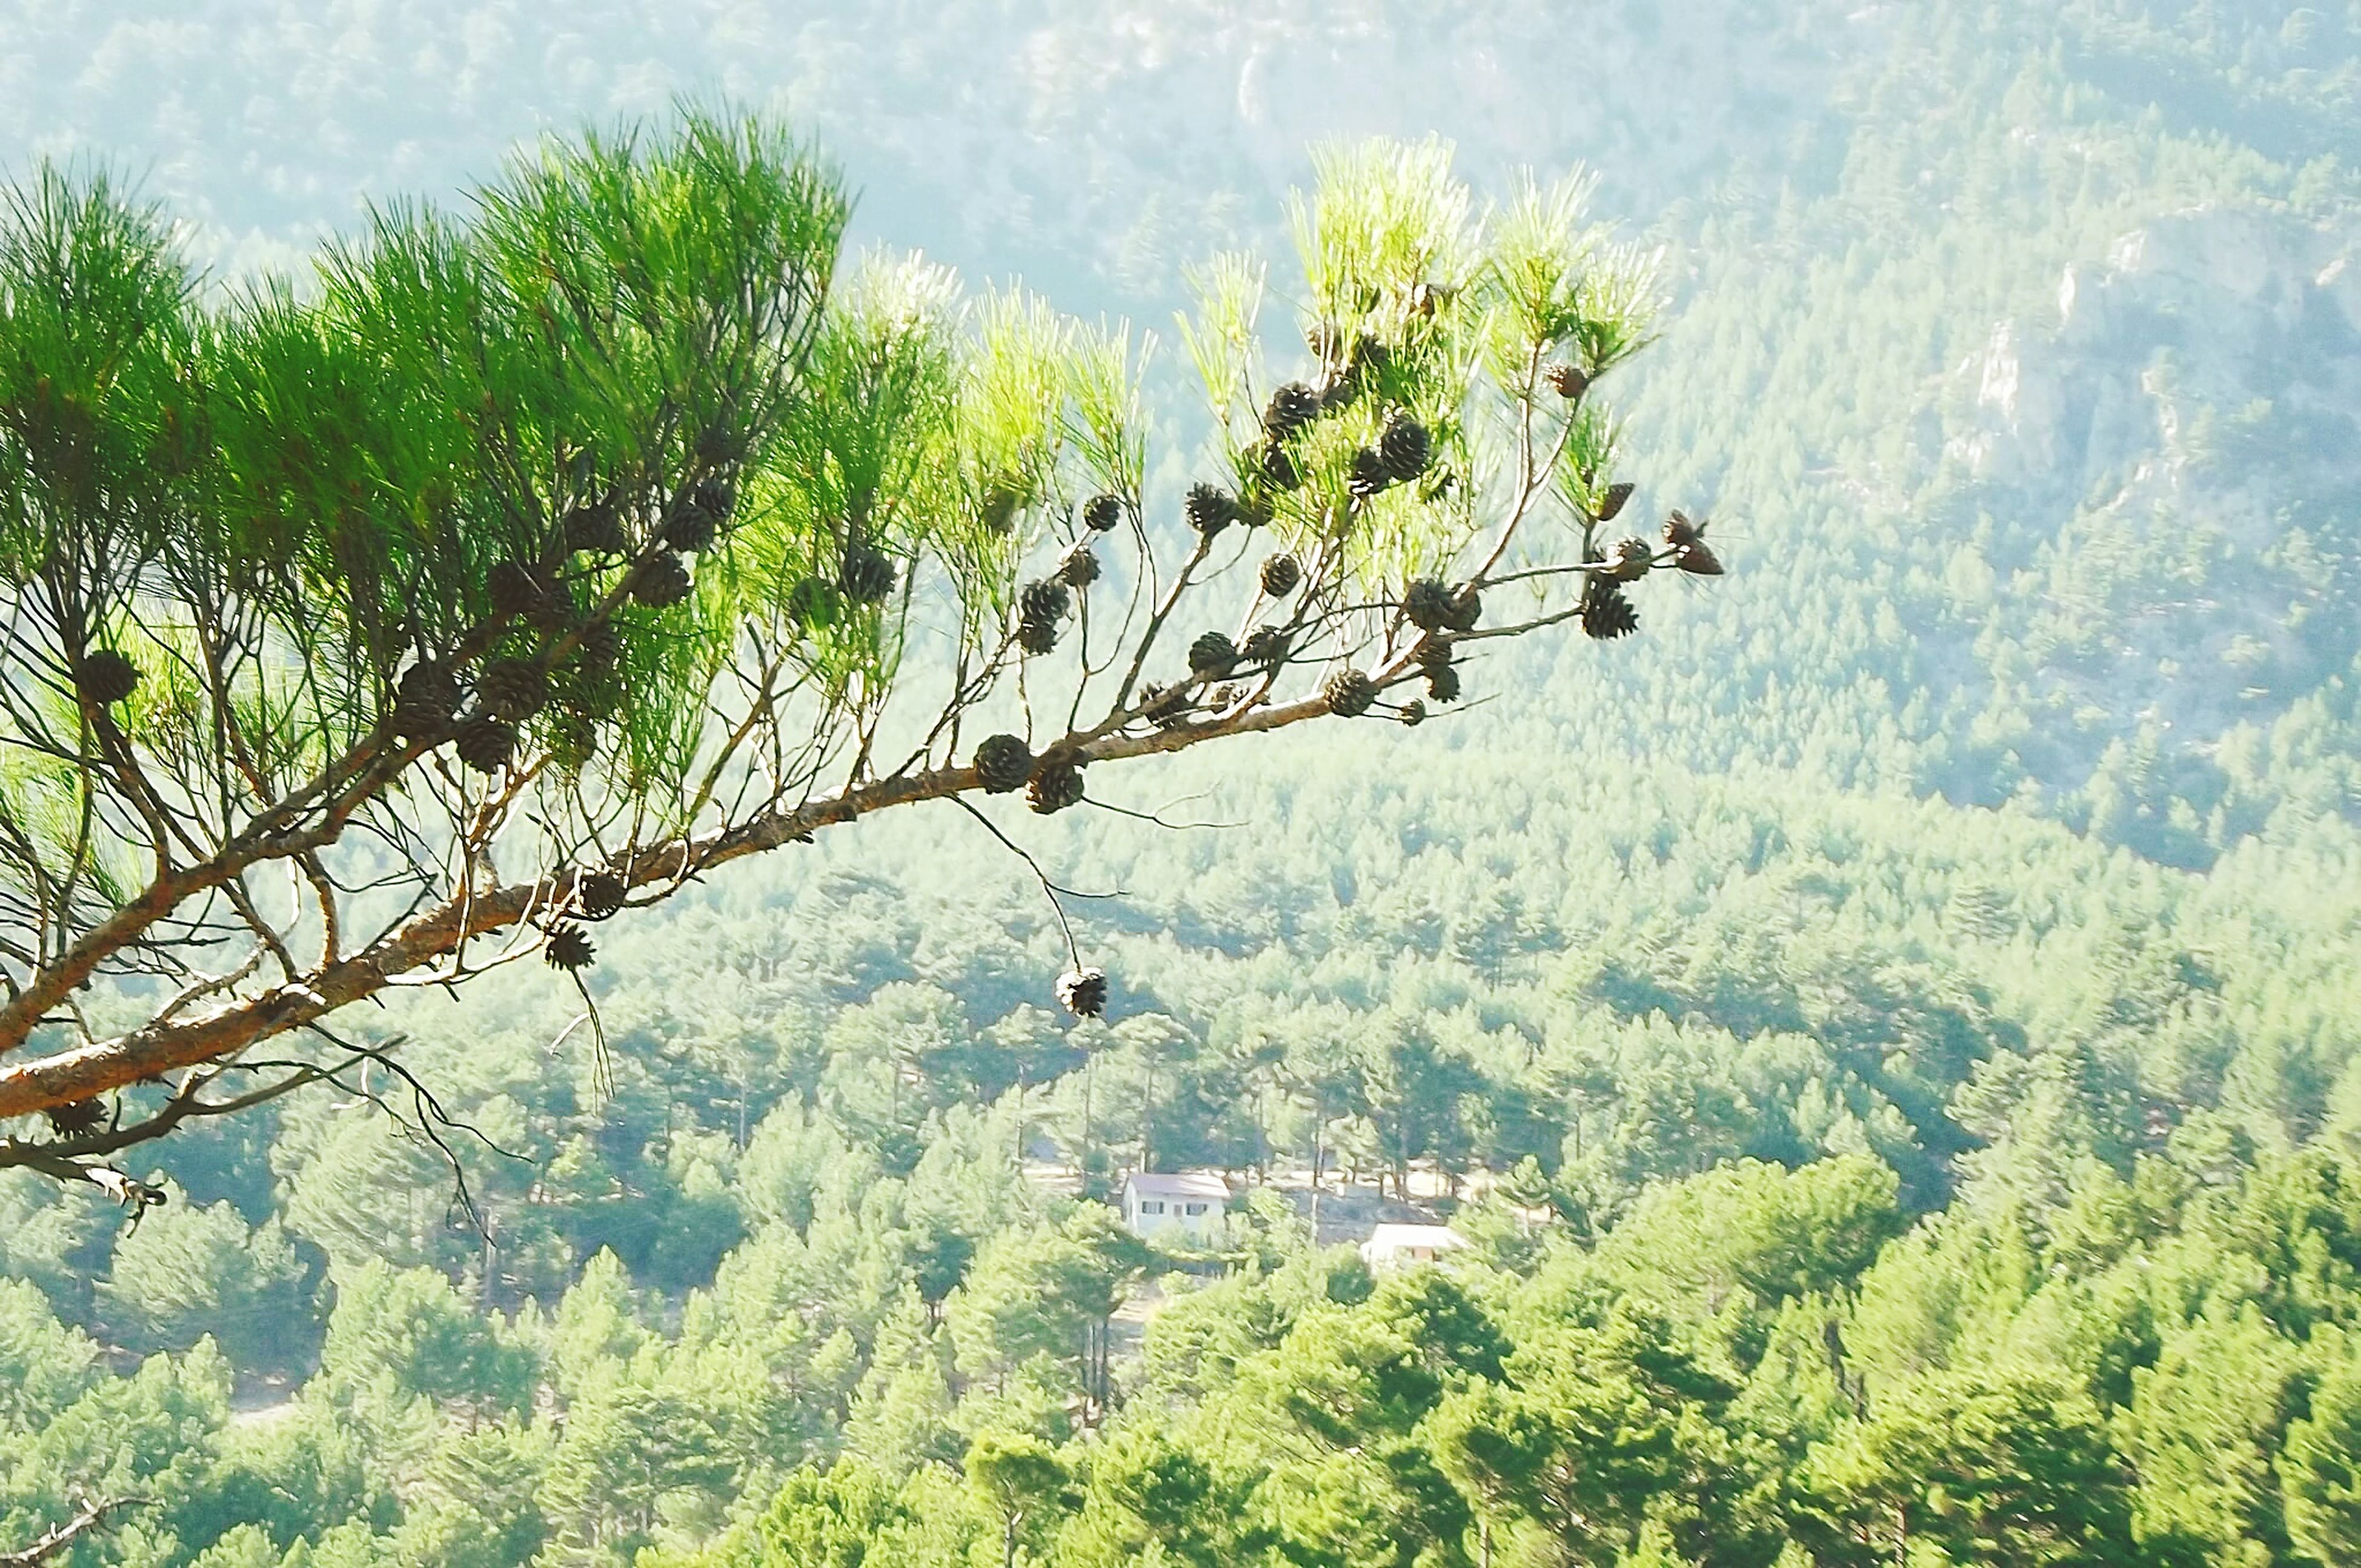 tree, growth, nature, tranquility, green color, sky, plant, tranquil scene, day, high angle view, branch, low angle view, beauty in nature, scenics, transportation, landscape, outdoors, non-urban scene, mode of transport, no people